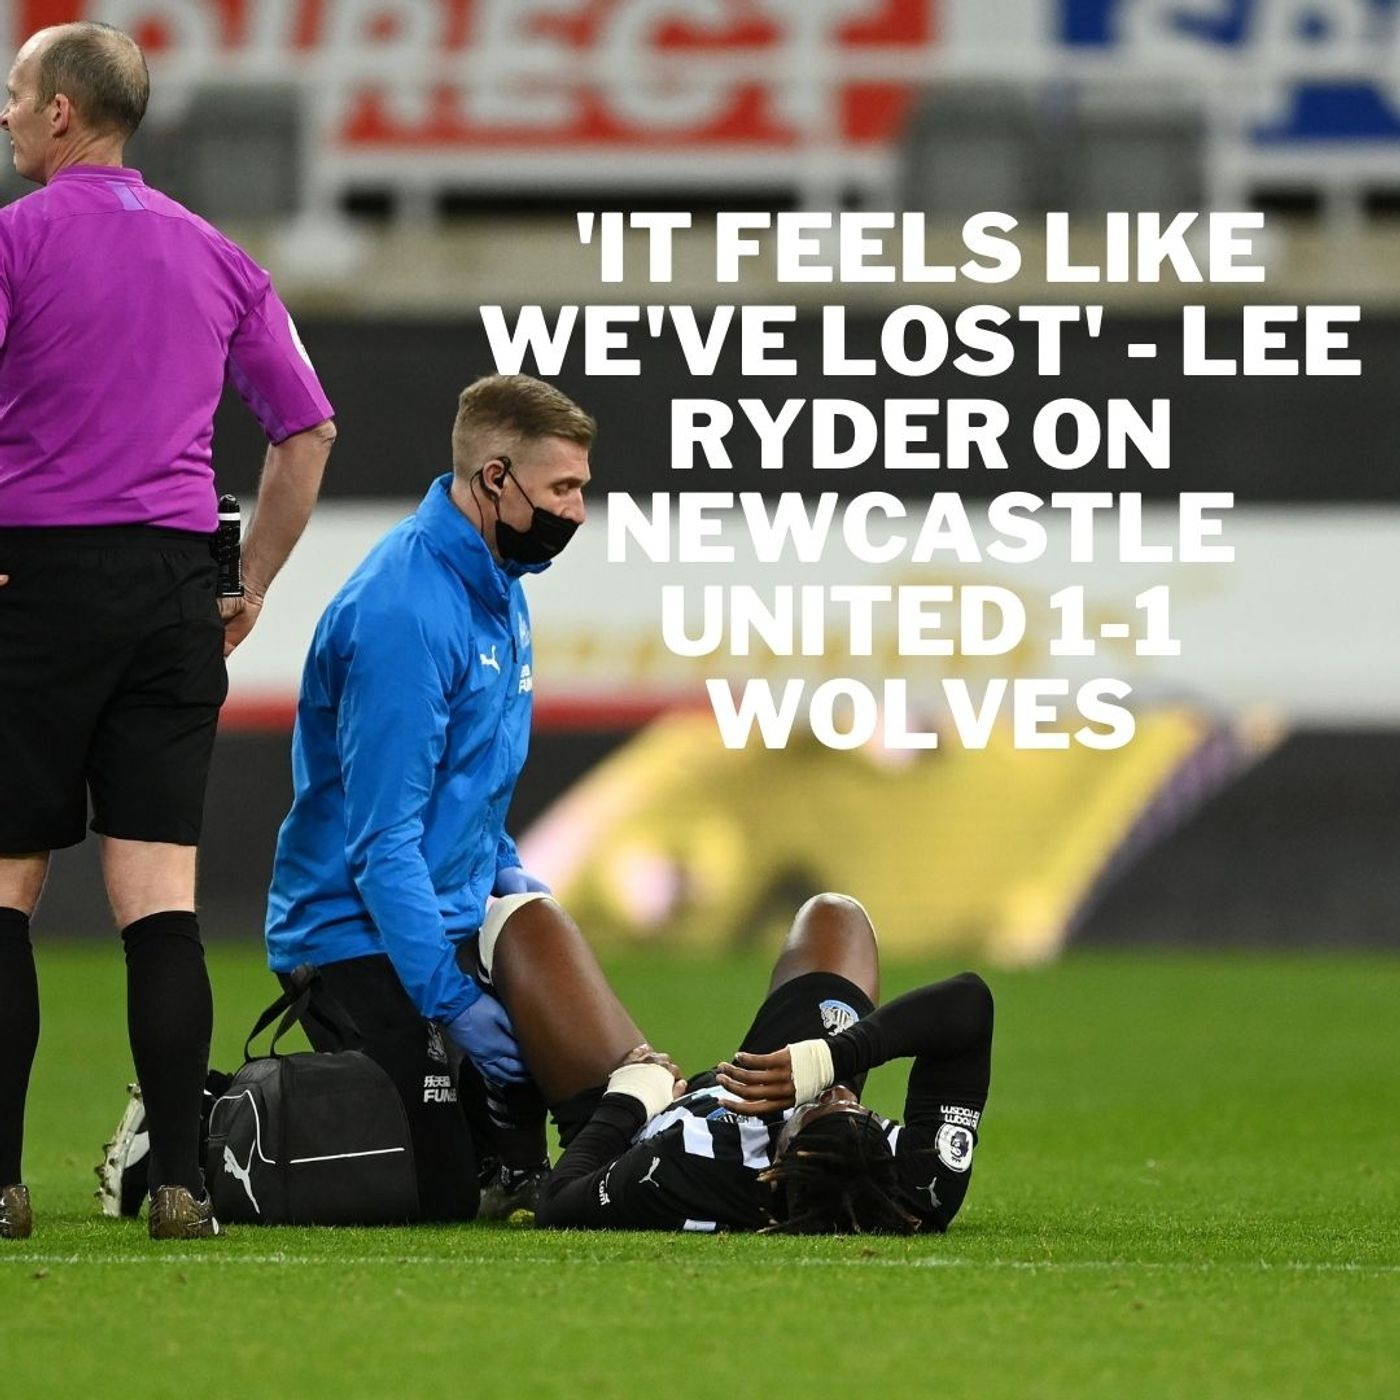 'It feels like a loss' - Lee Ryder reflects on Newcastle United 1-1 Wolves